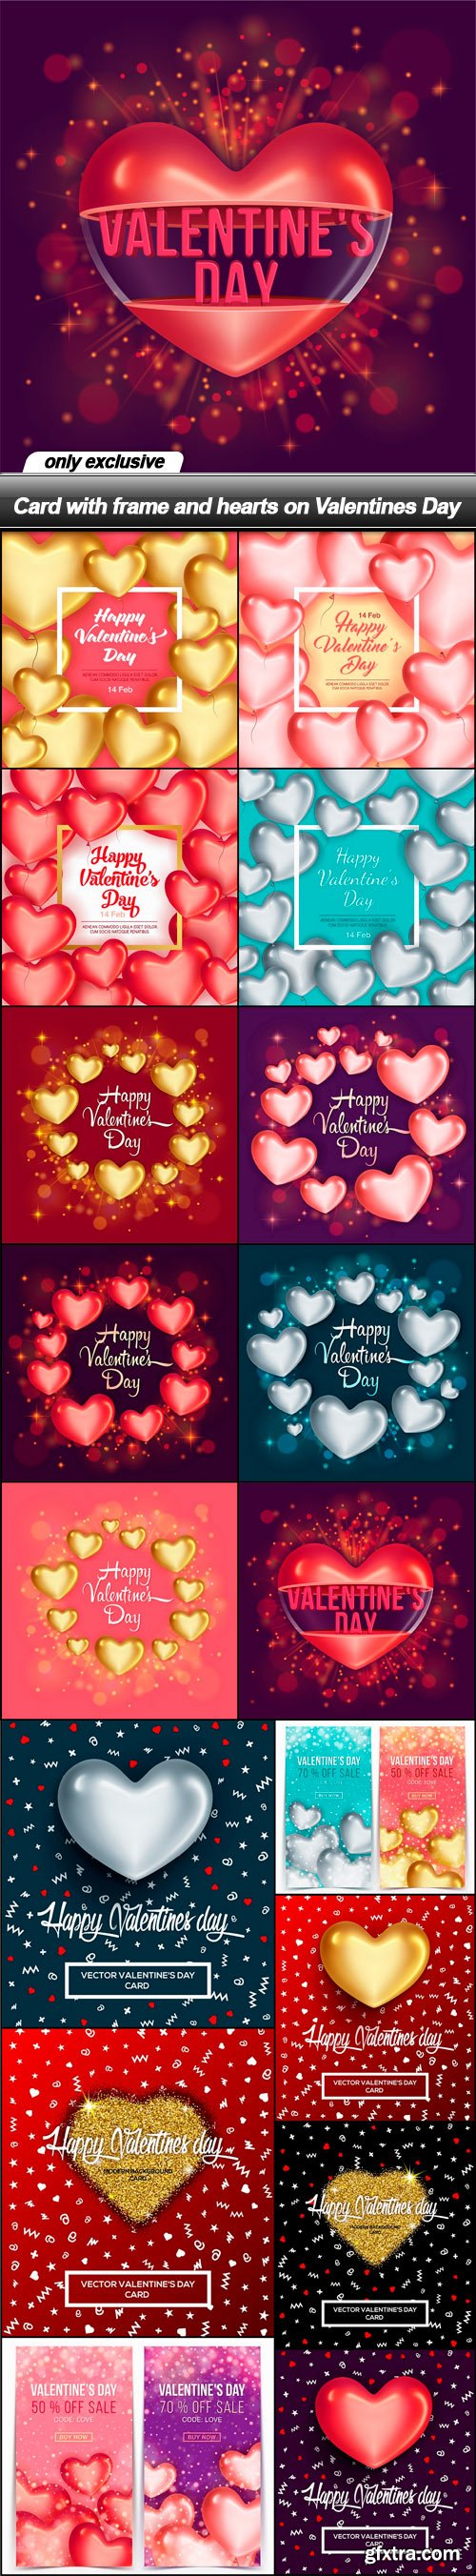 Card with frame and hearts on Valentines Day - 17 EPS